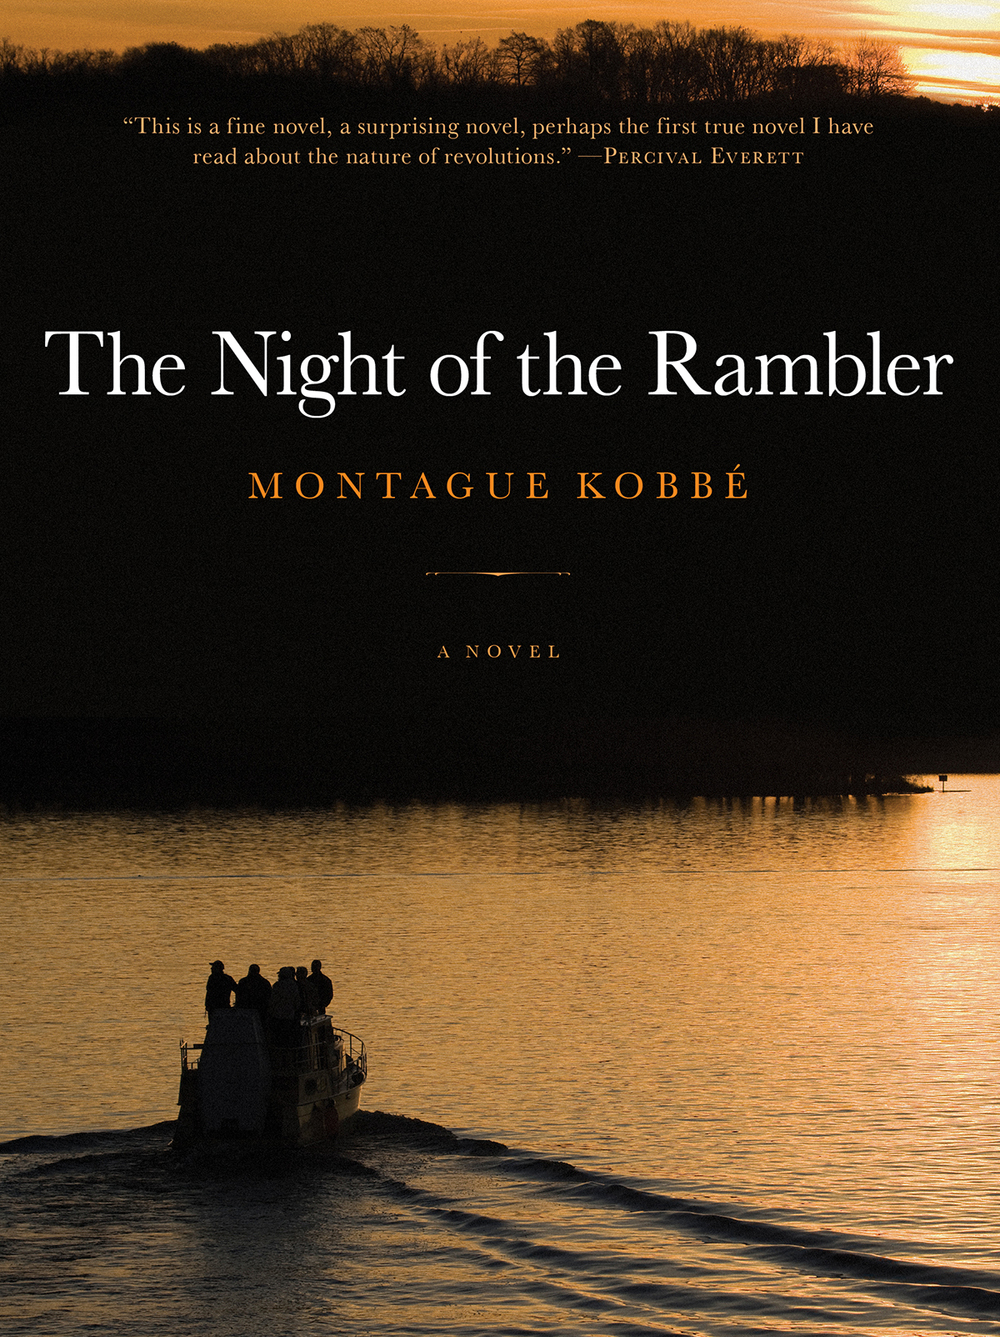 The Night of the Rambler Montague Kobbe.jpg